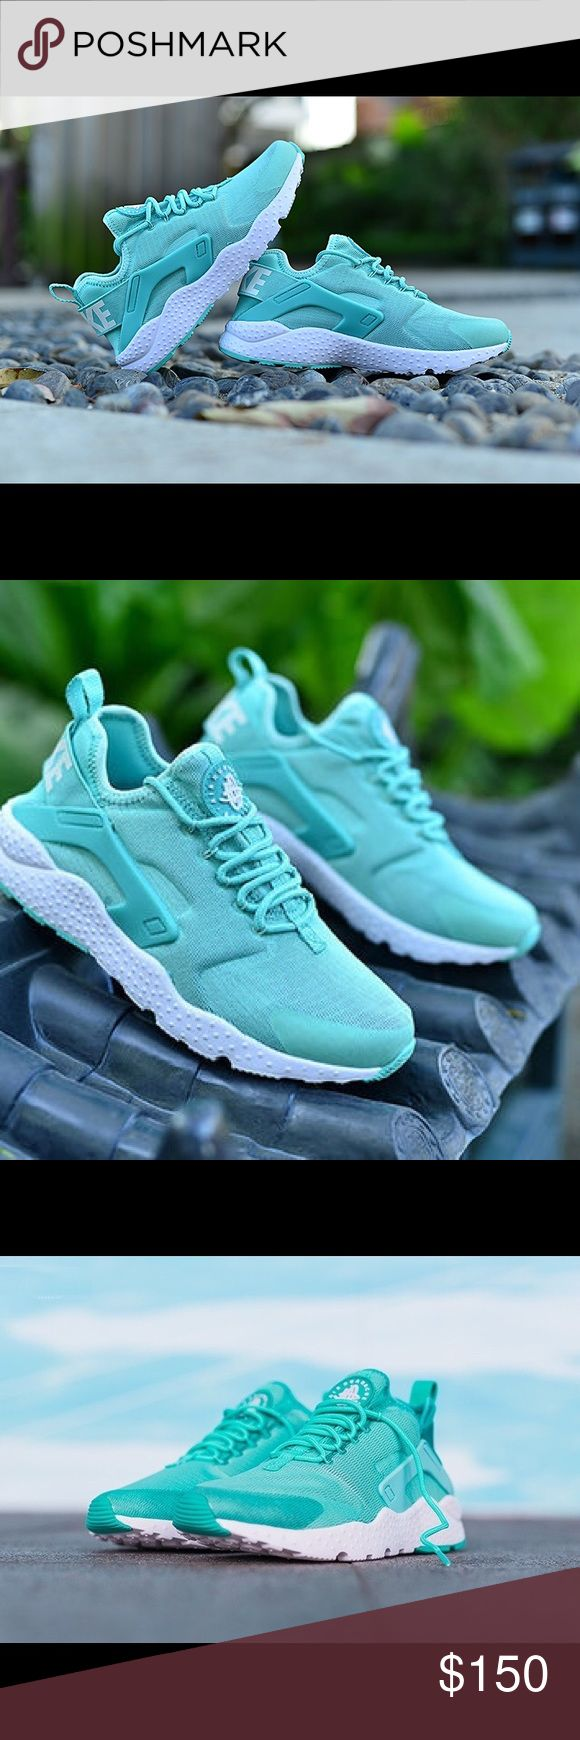 "Nike Air Huarache Ultra Very nice ""Tiffany Blue"" color. These run about 1/2 size small according to reviews made on Nike. Very lightweight and super comfortable! Brand new never worn with box without lid. These color way is not sold in stores or online. Nike Shoes Athletic Shoes"